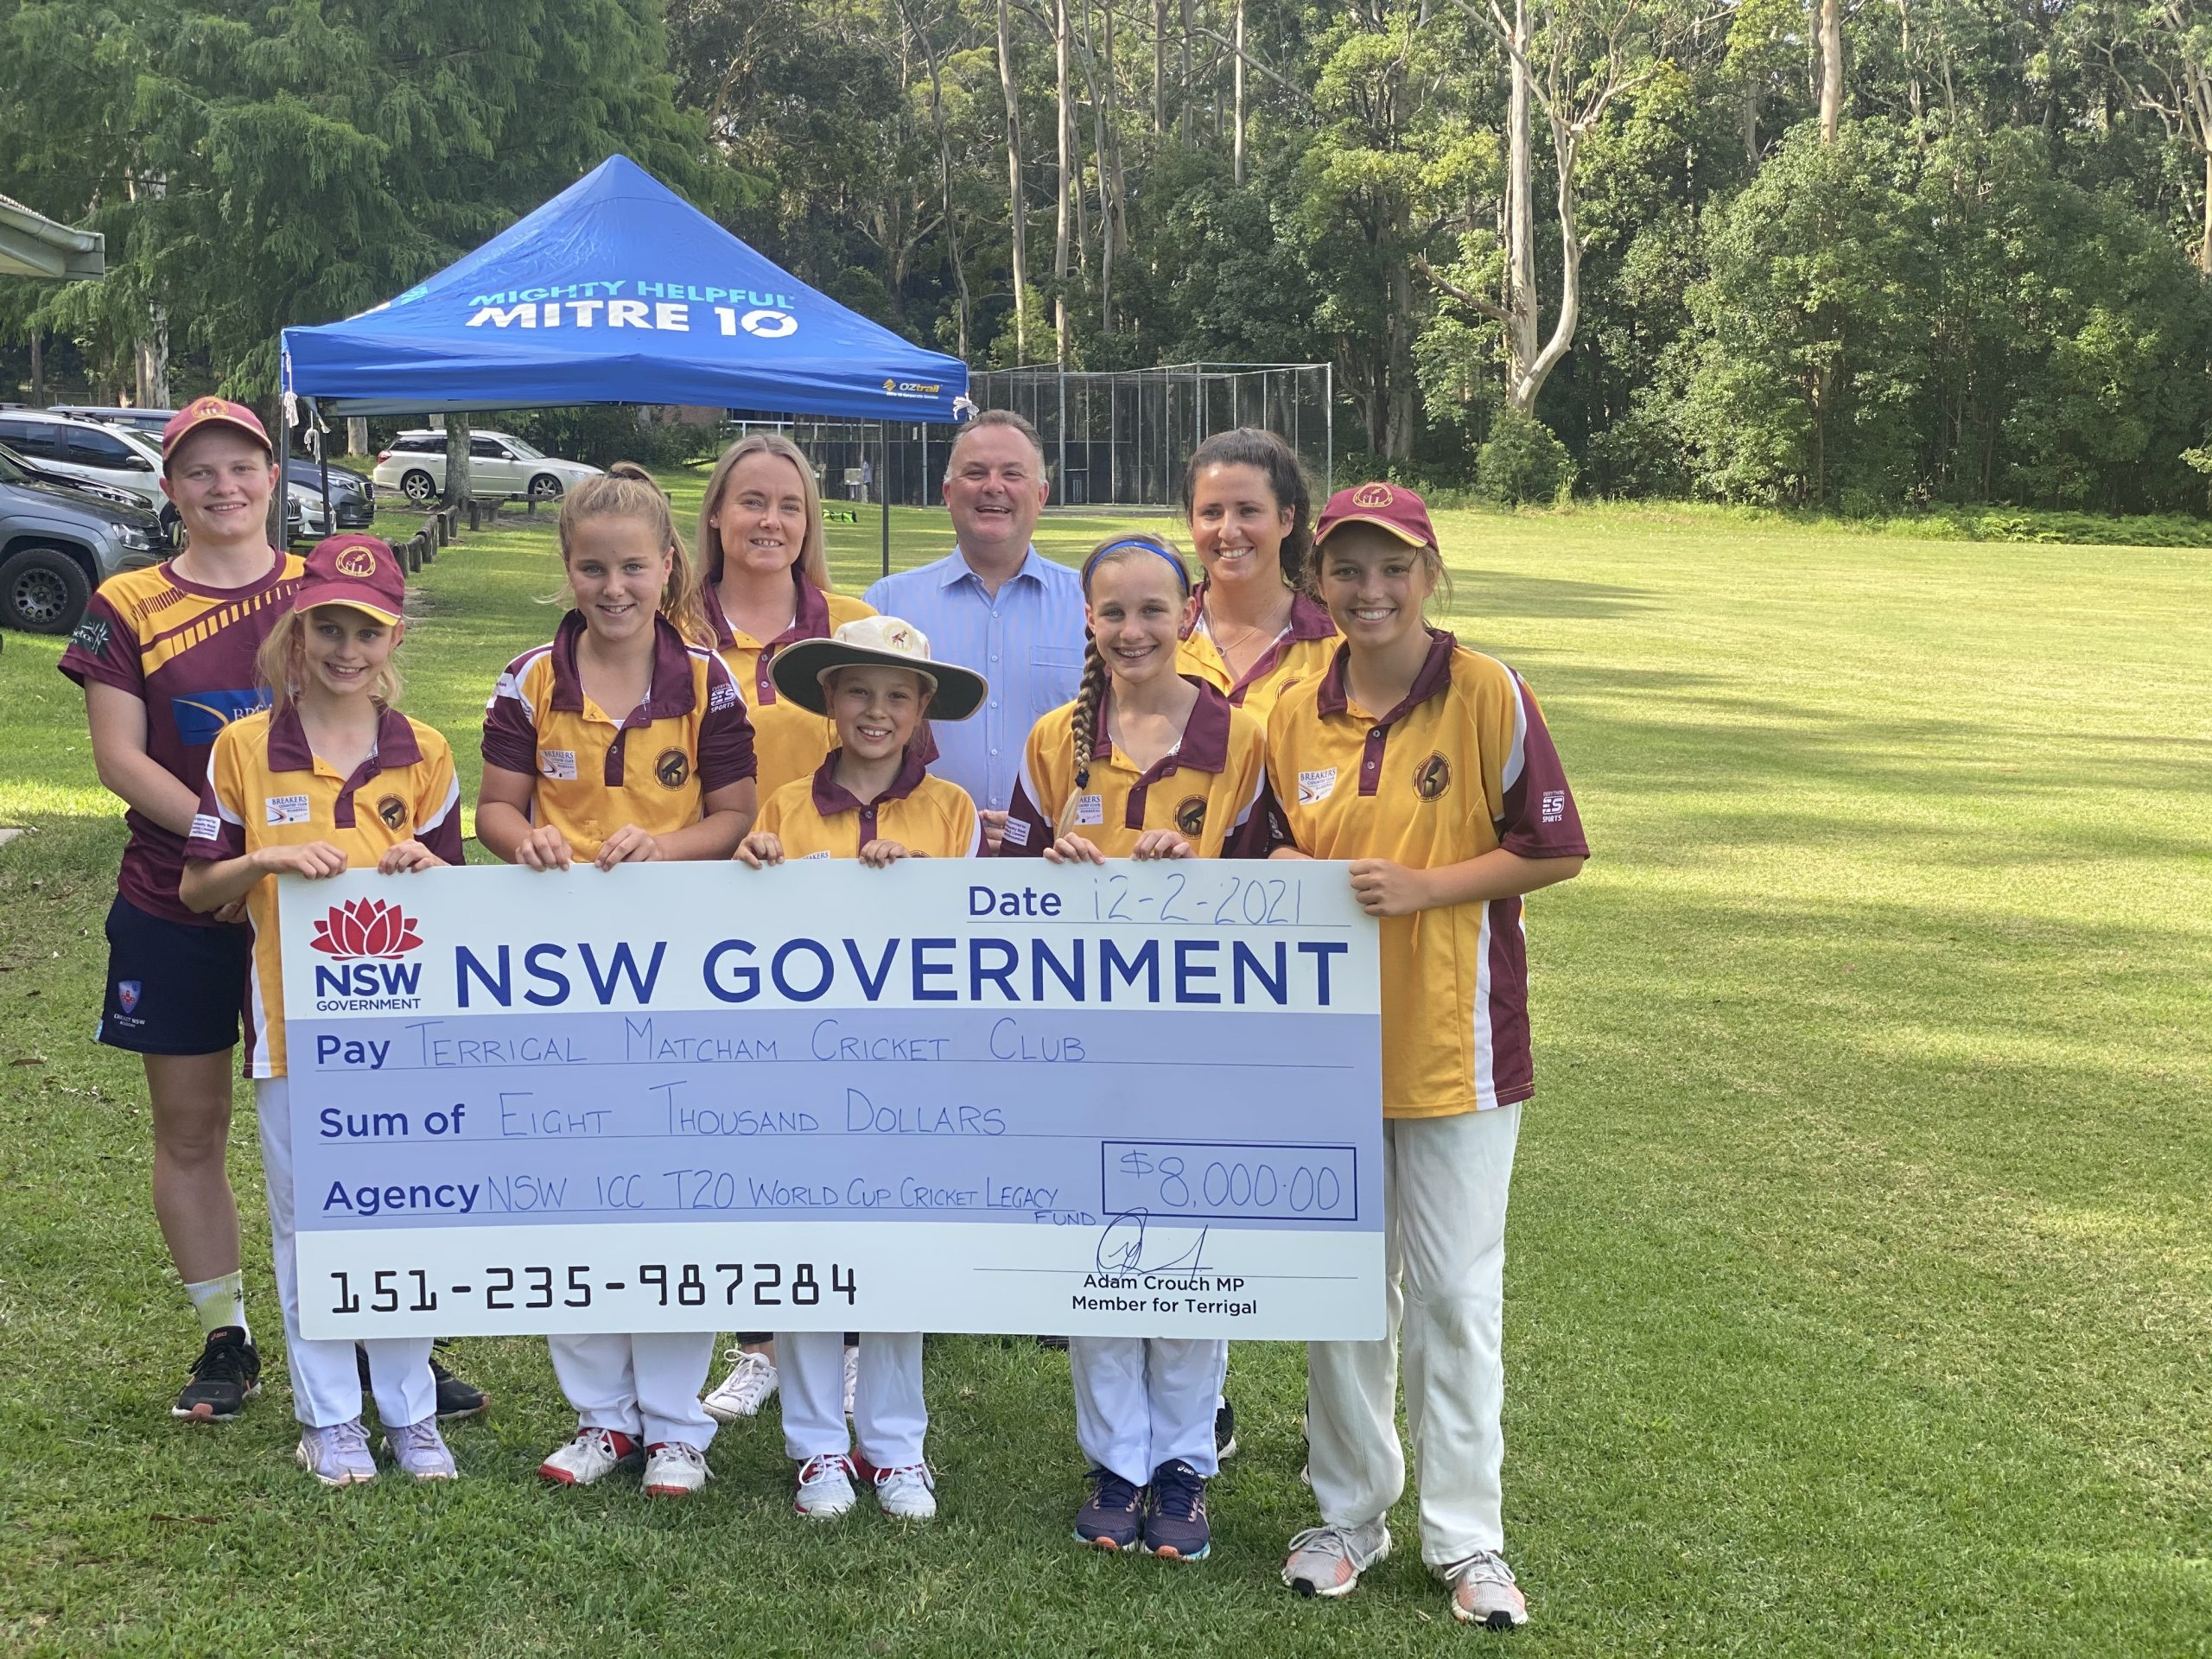 NEW FUNDING HITS RUNS FOR LOCAL CRICKET